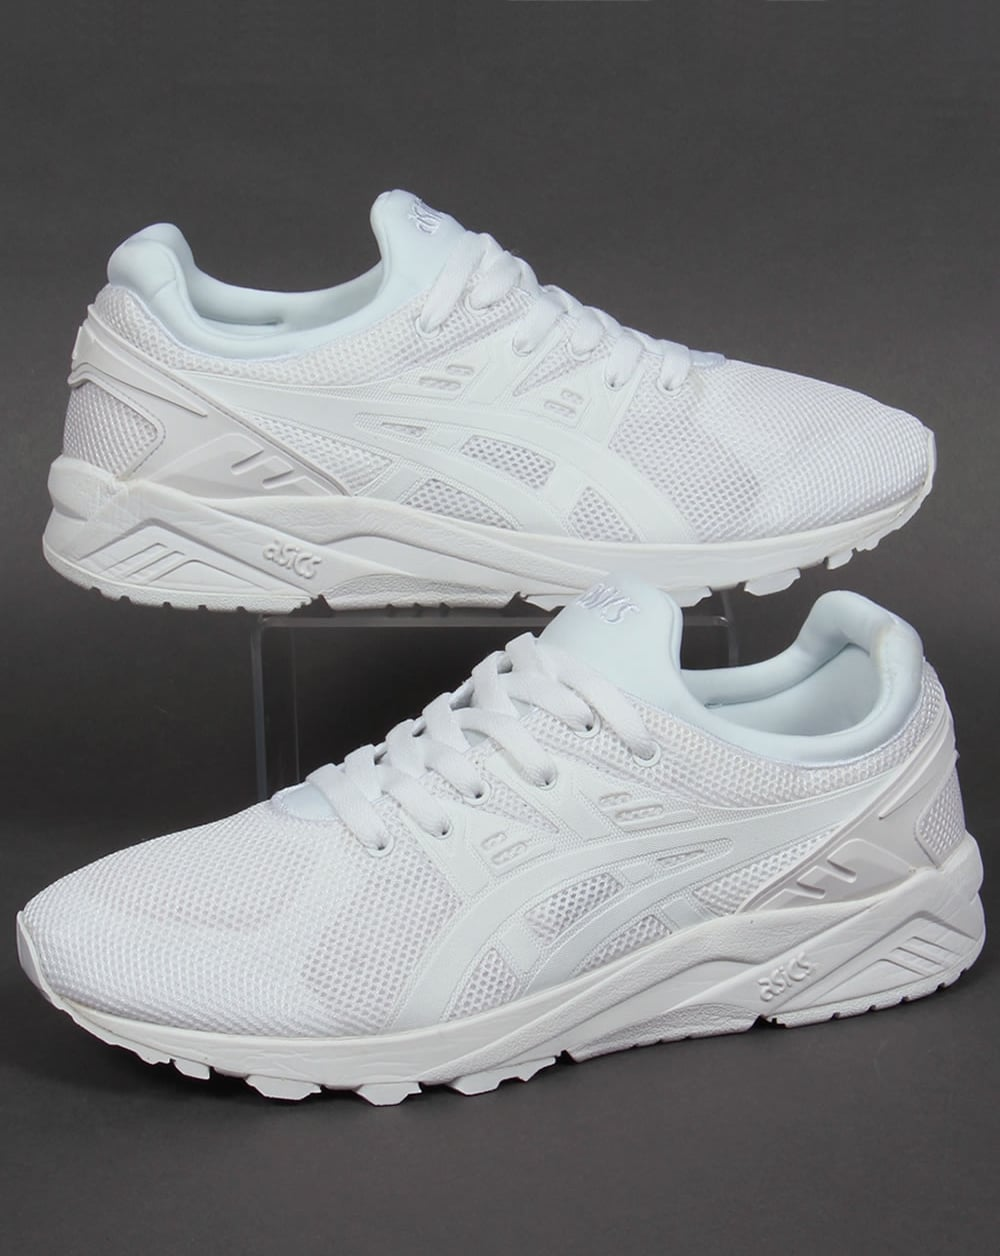 asics gel kayano evo trainers white tech pack shoes. Black Bedroom Furniture Sets. Home Design Ideas